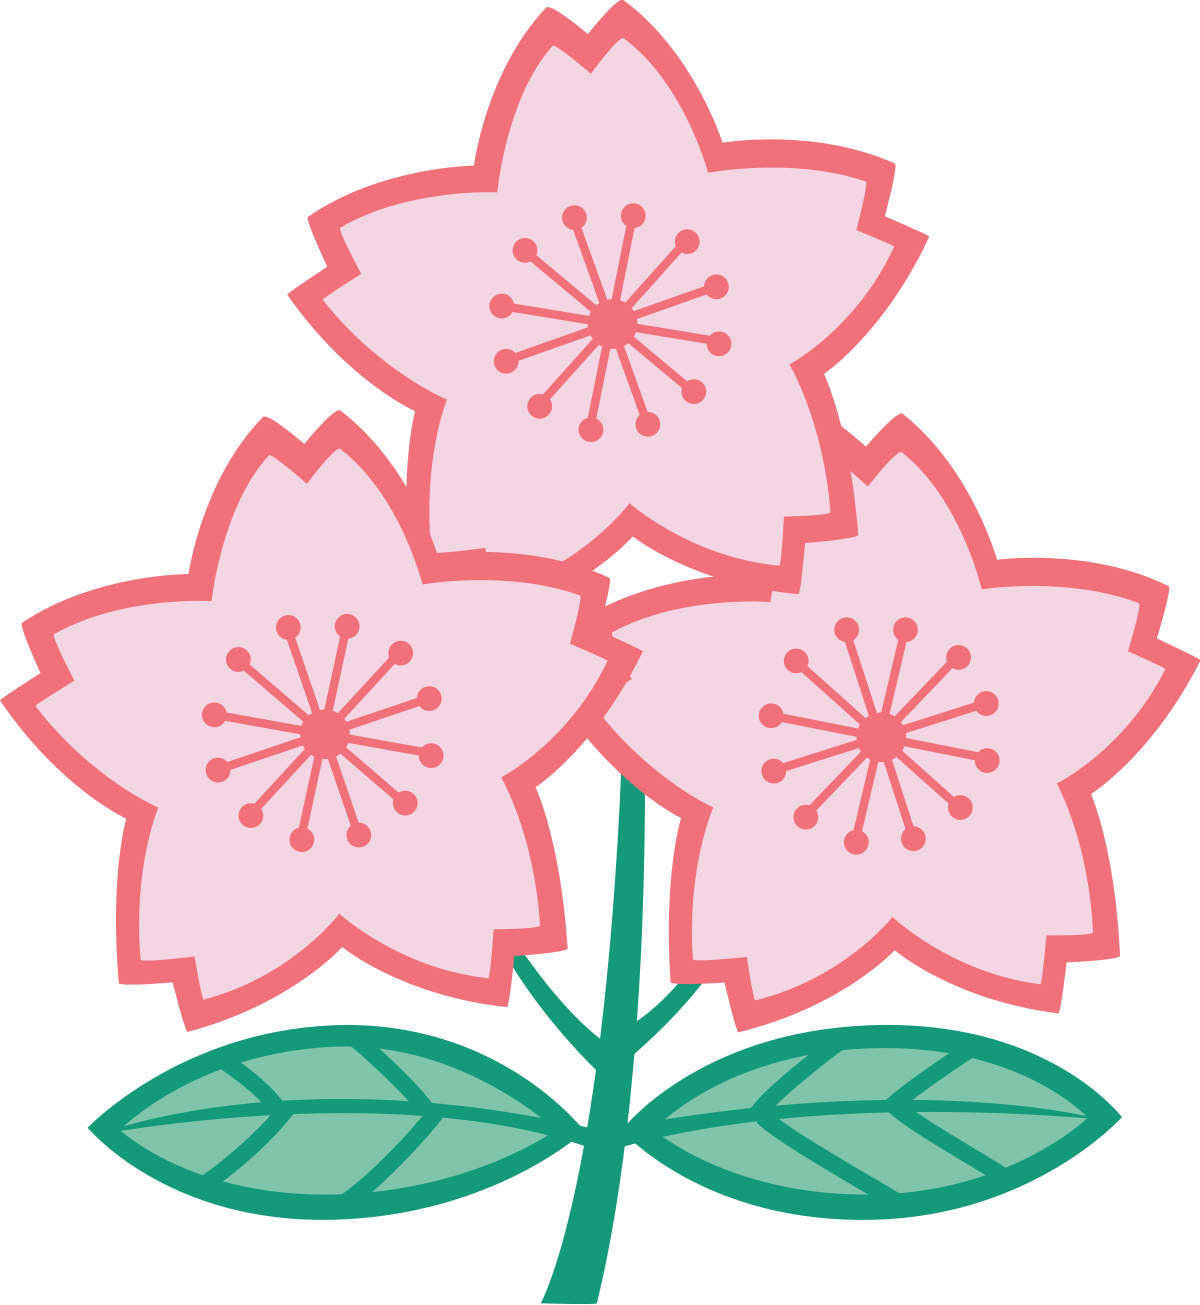 Japan national rugby union. Japanese flower png